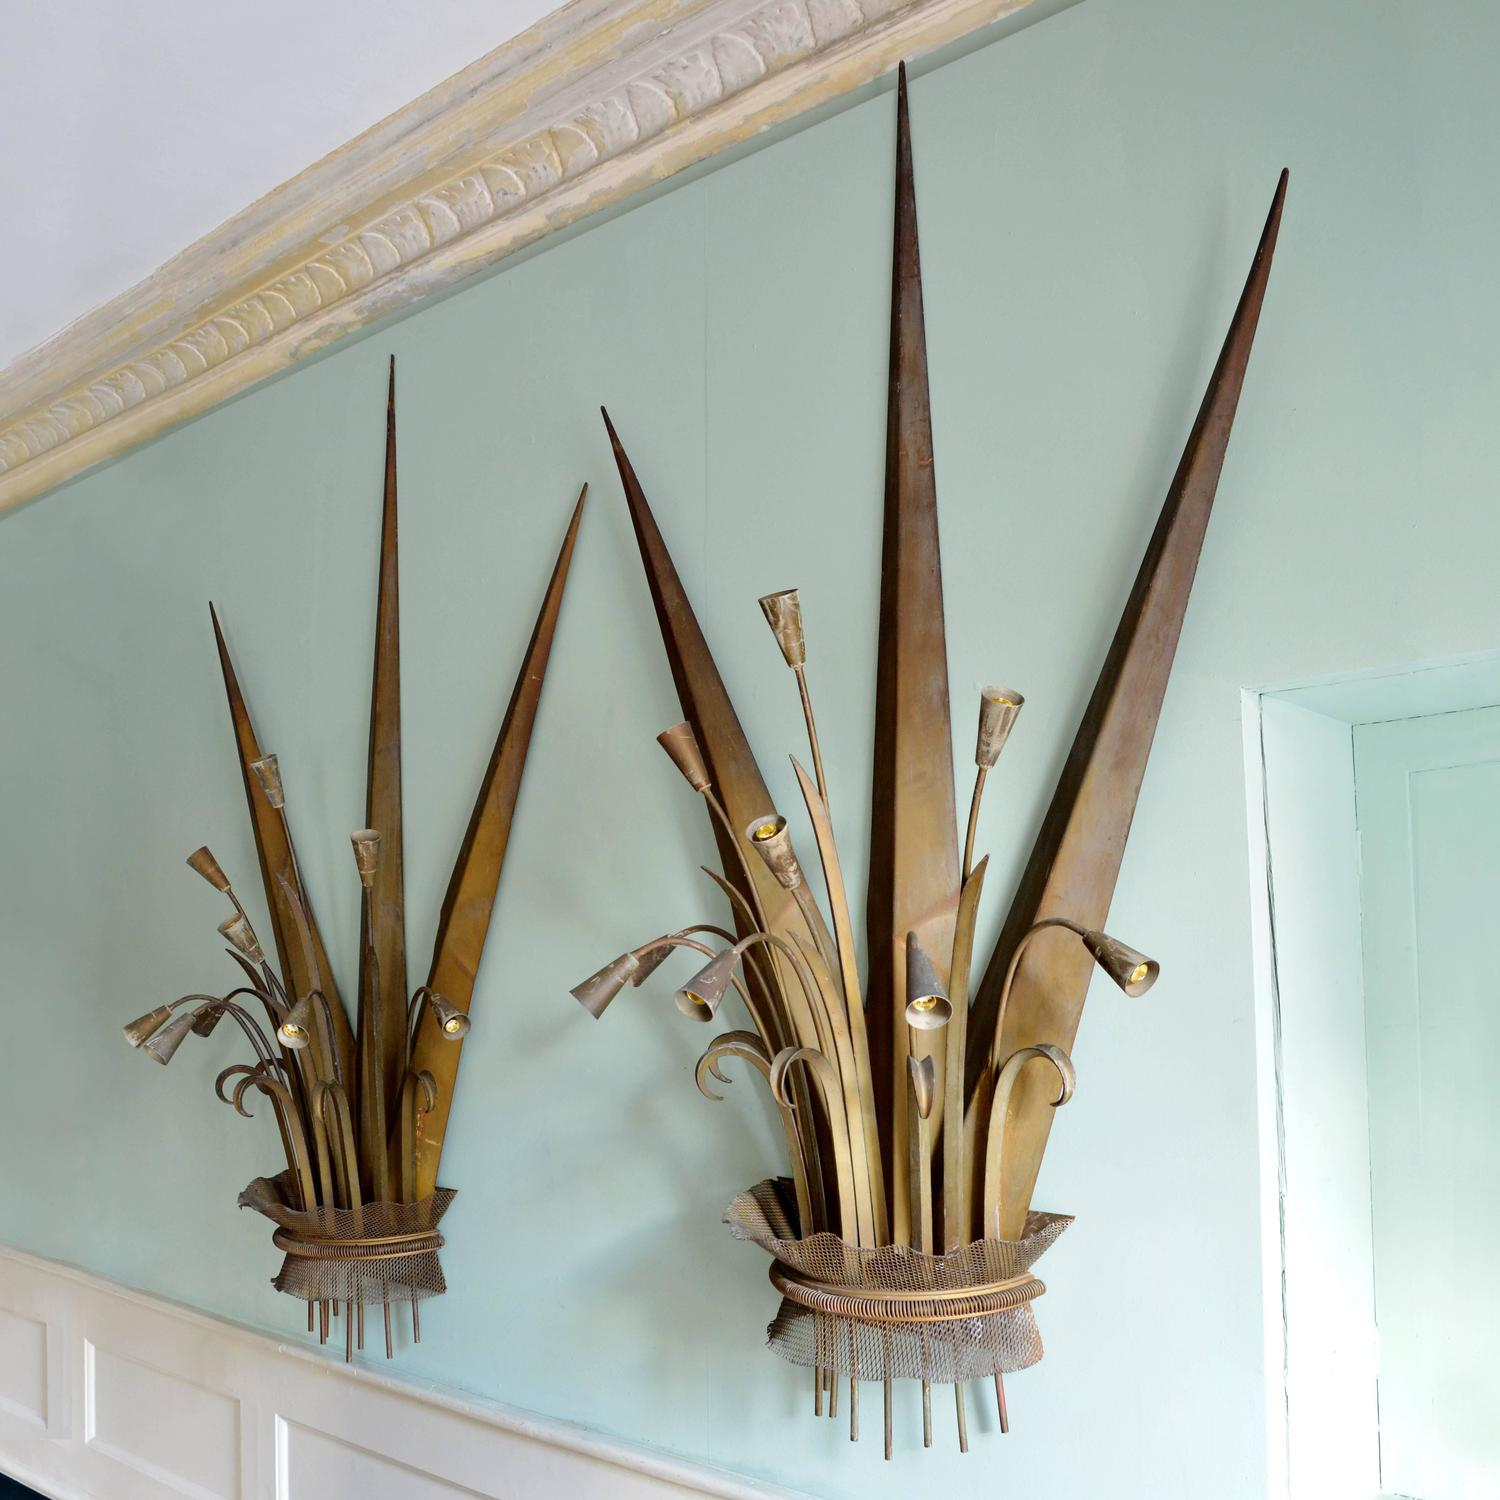 Large Plant-Form Wall Lights For Sale at 1stdibs